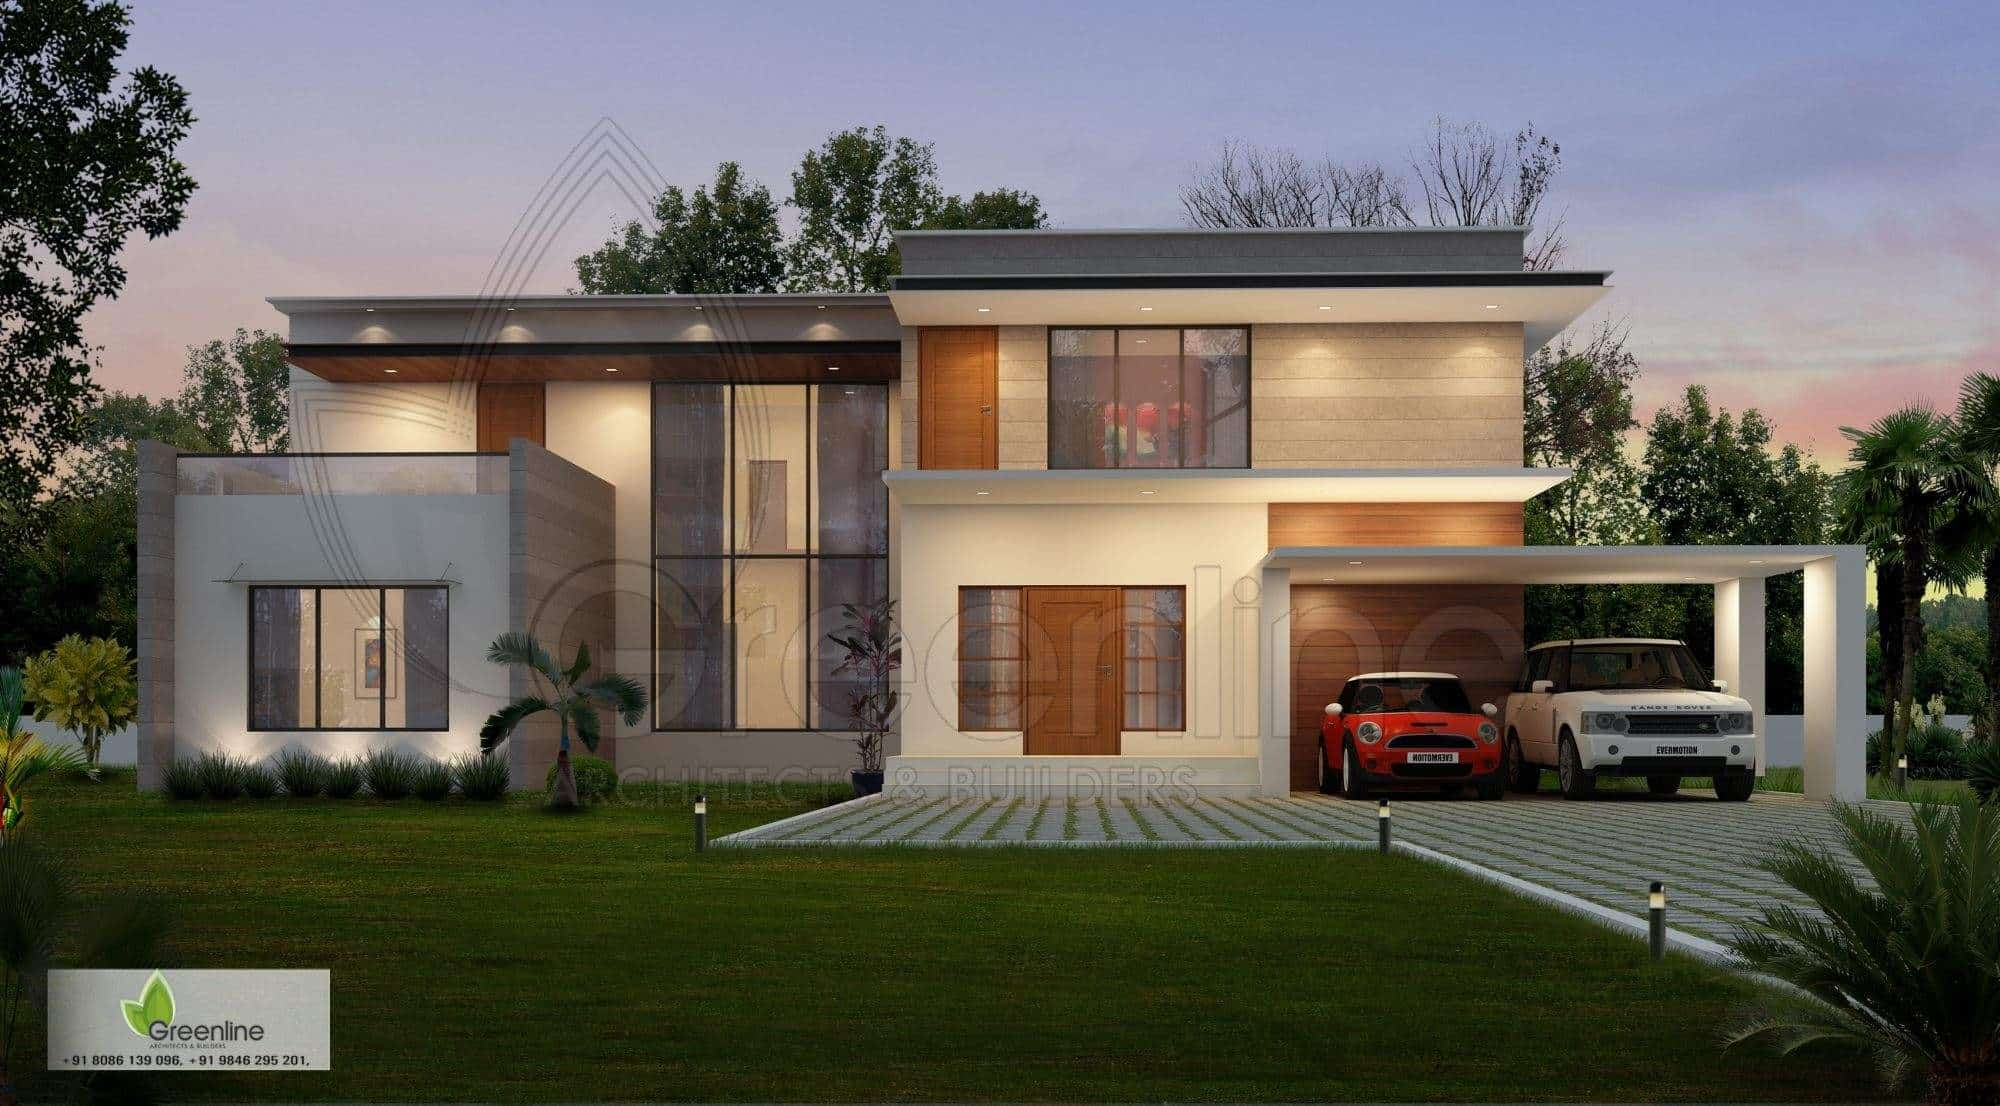 Wg Builders greenline architects builders calicut ho residence interior